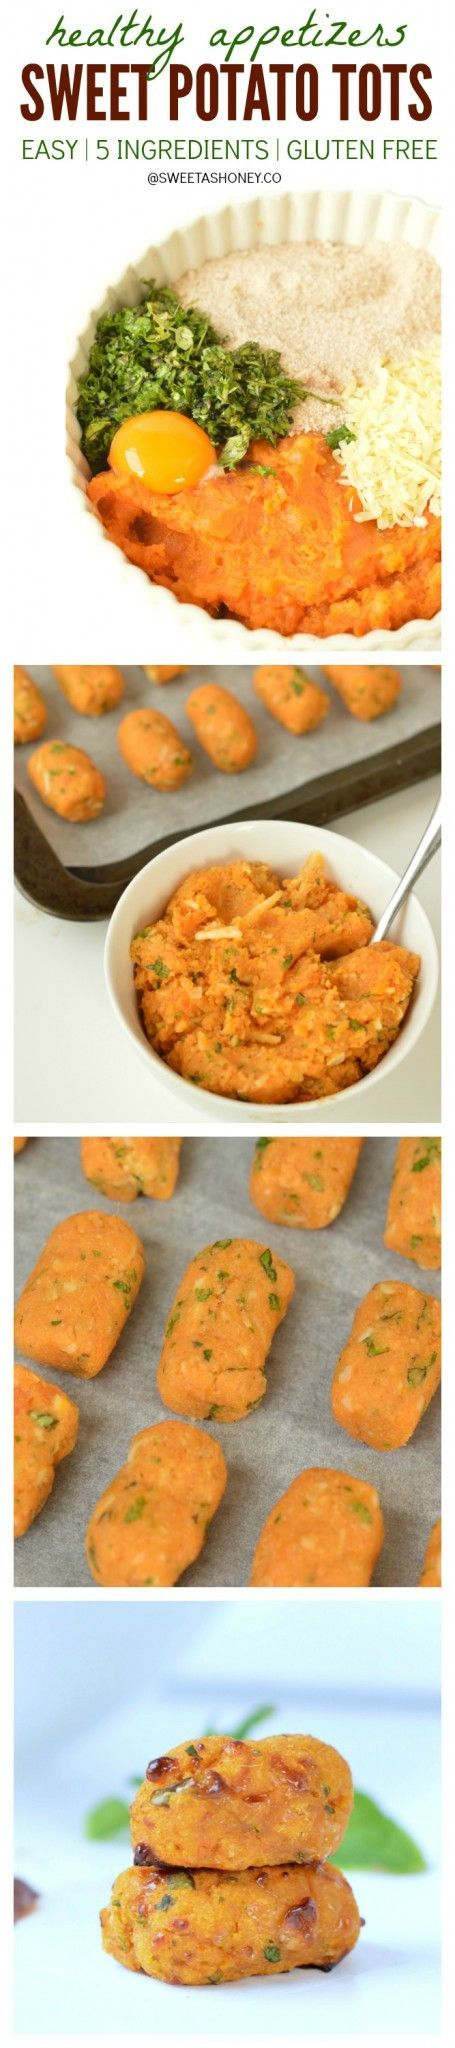 You know how much I love to turn my vegetables into tasty finger food right? Well, those cheesy sweet potato tots will quickly become one of your next favorite appetizers! Trust me, those simple vegetable bites will seduce all your friends and even the kids! I have a HUGE passion for healthy finger food. I...Read More »